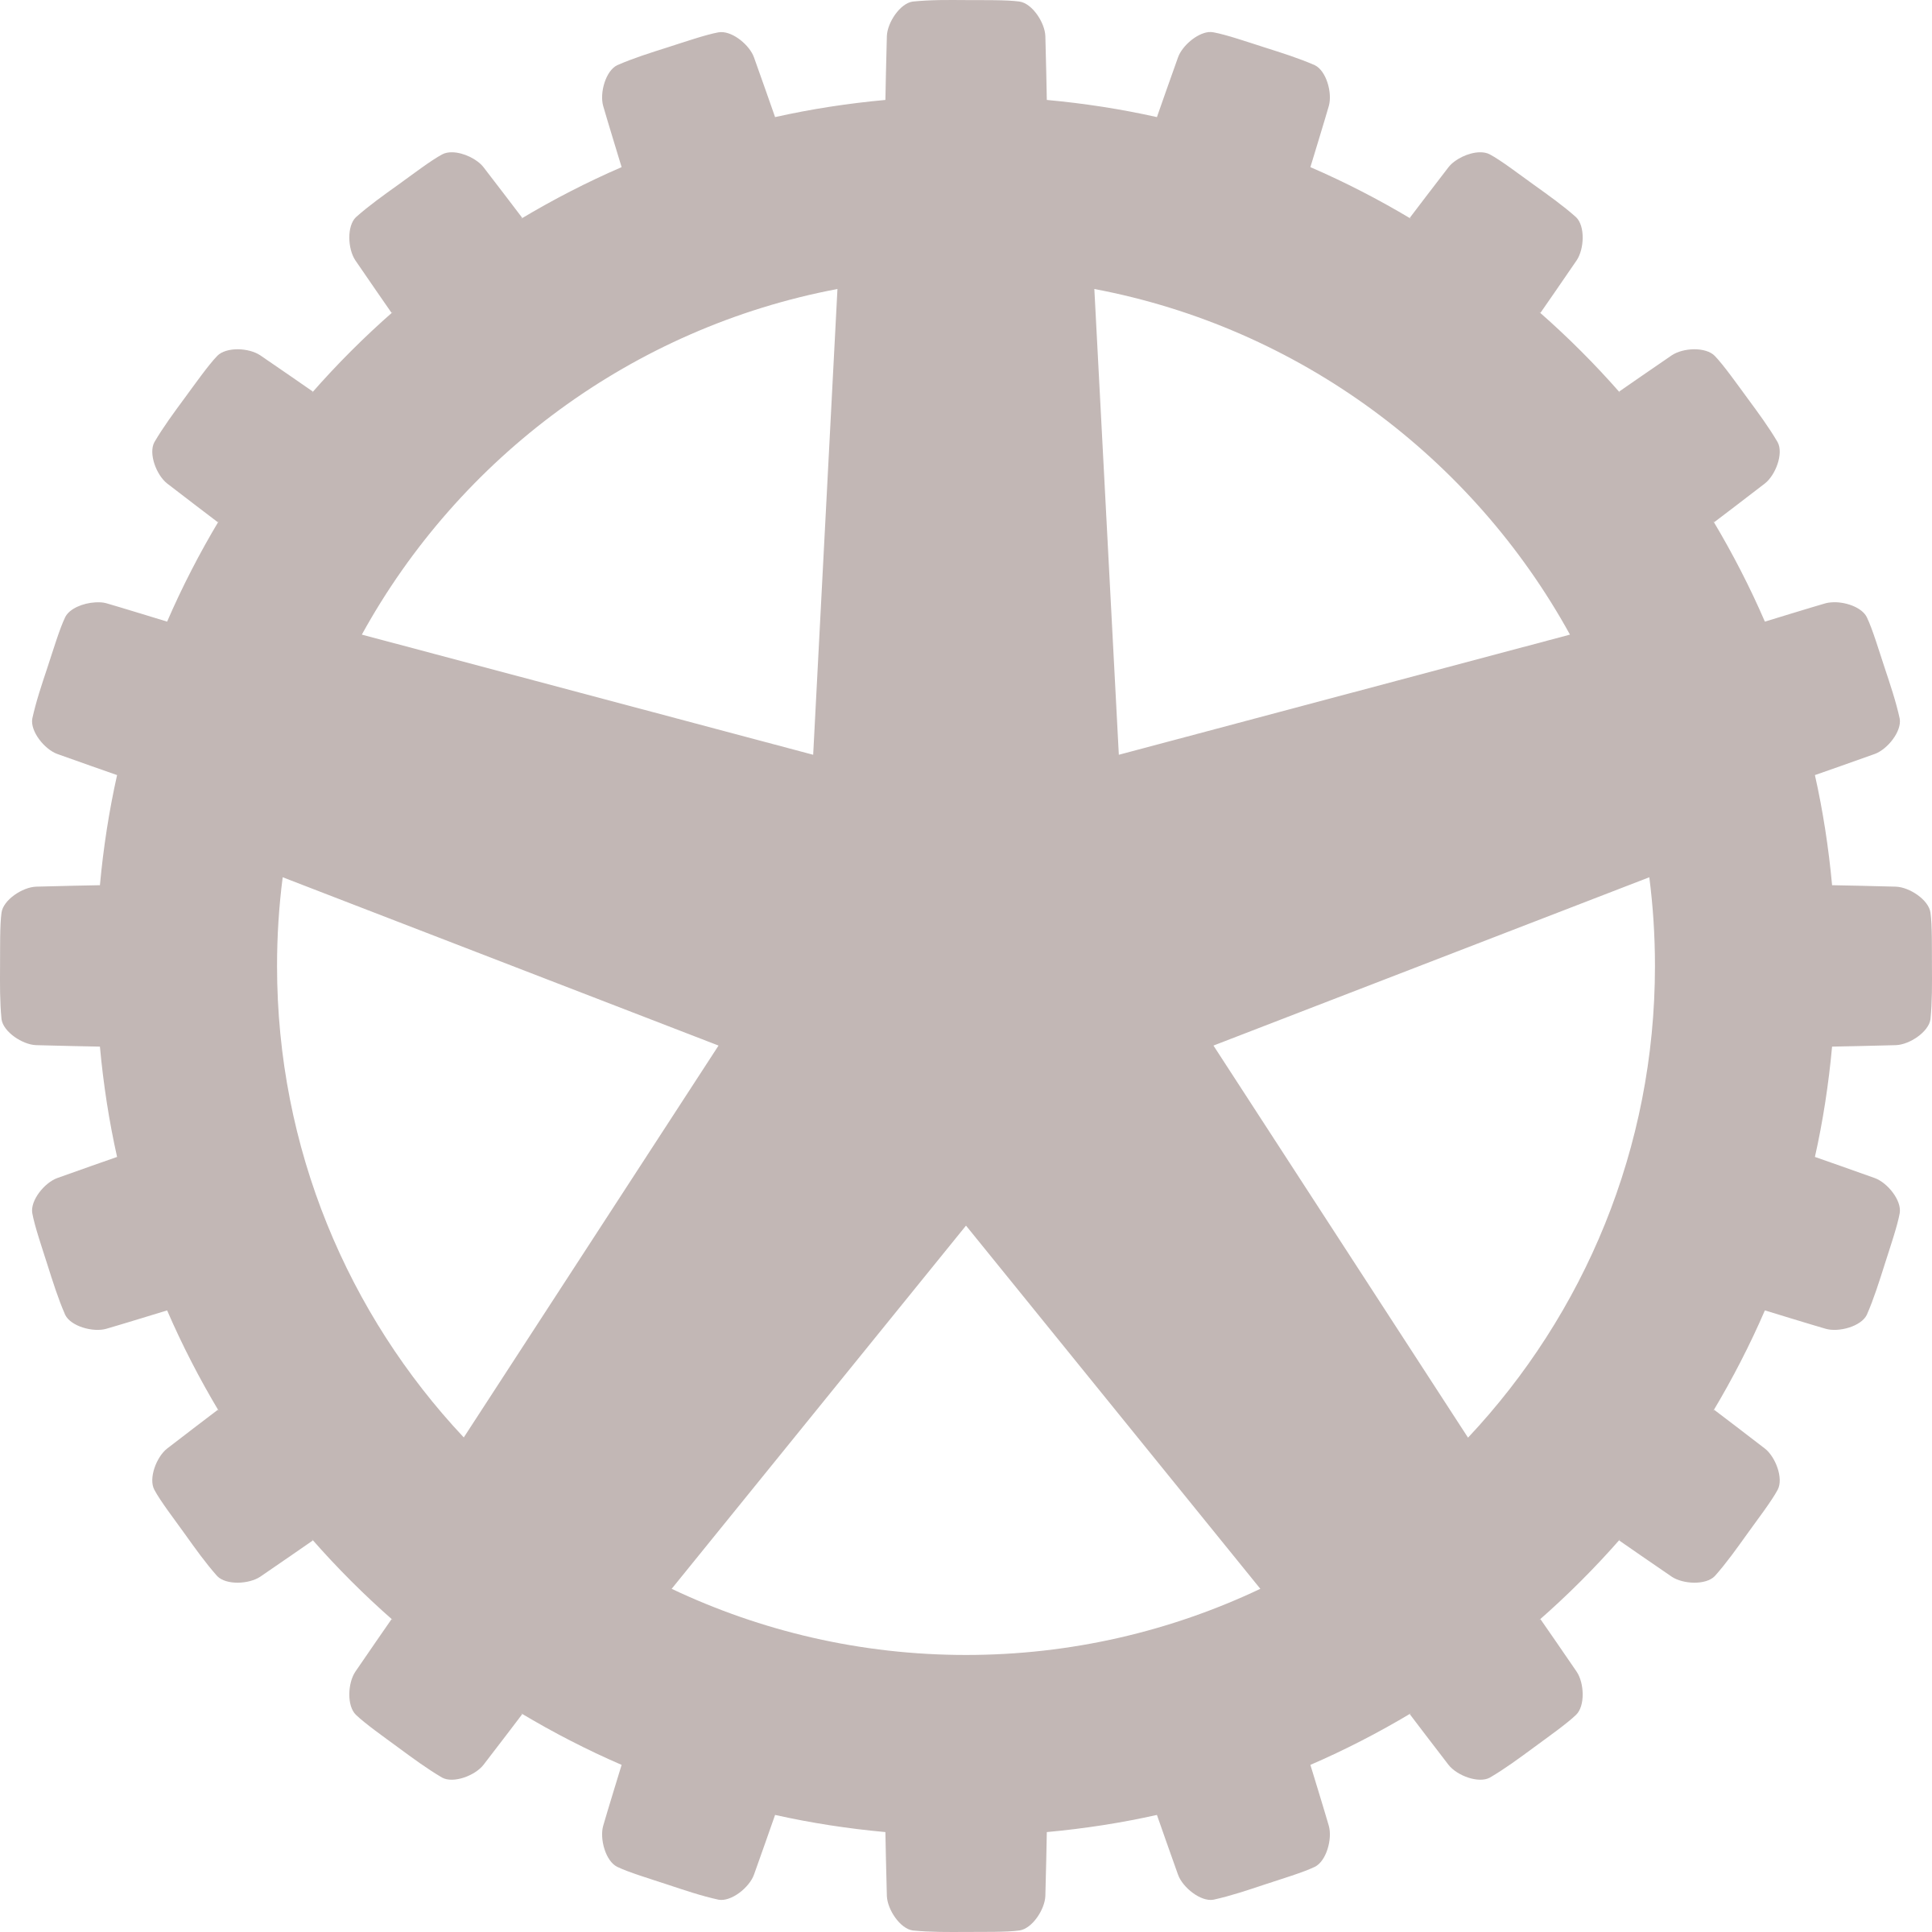 Wheel big image png. Gear clipart engineering symbol